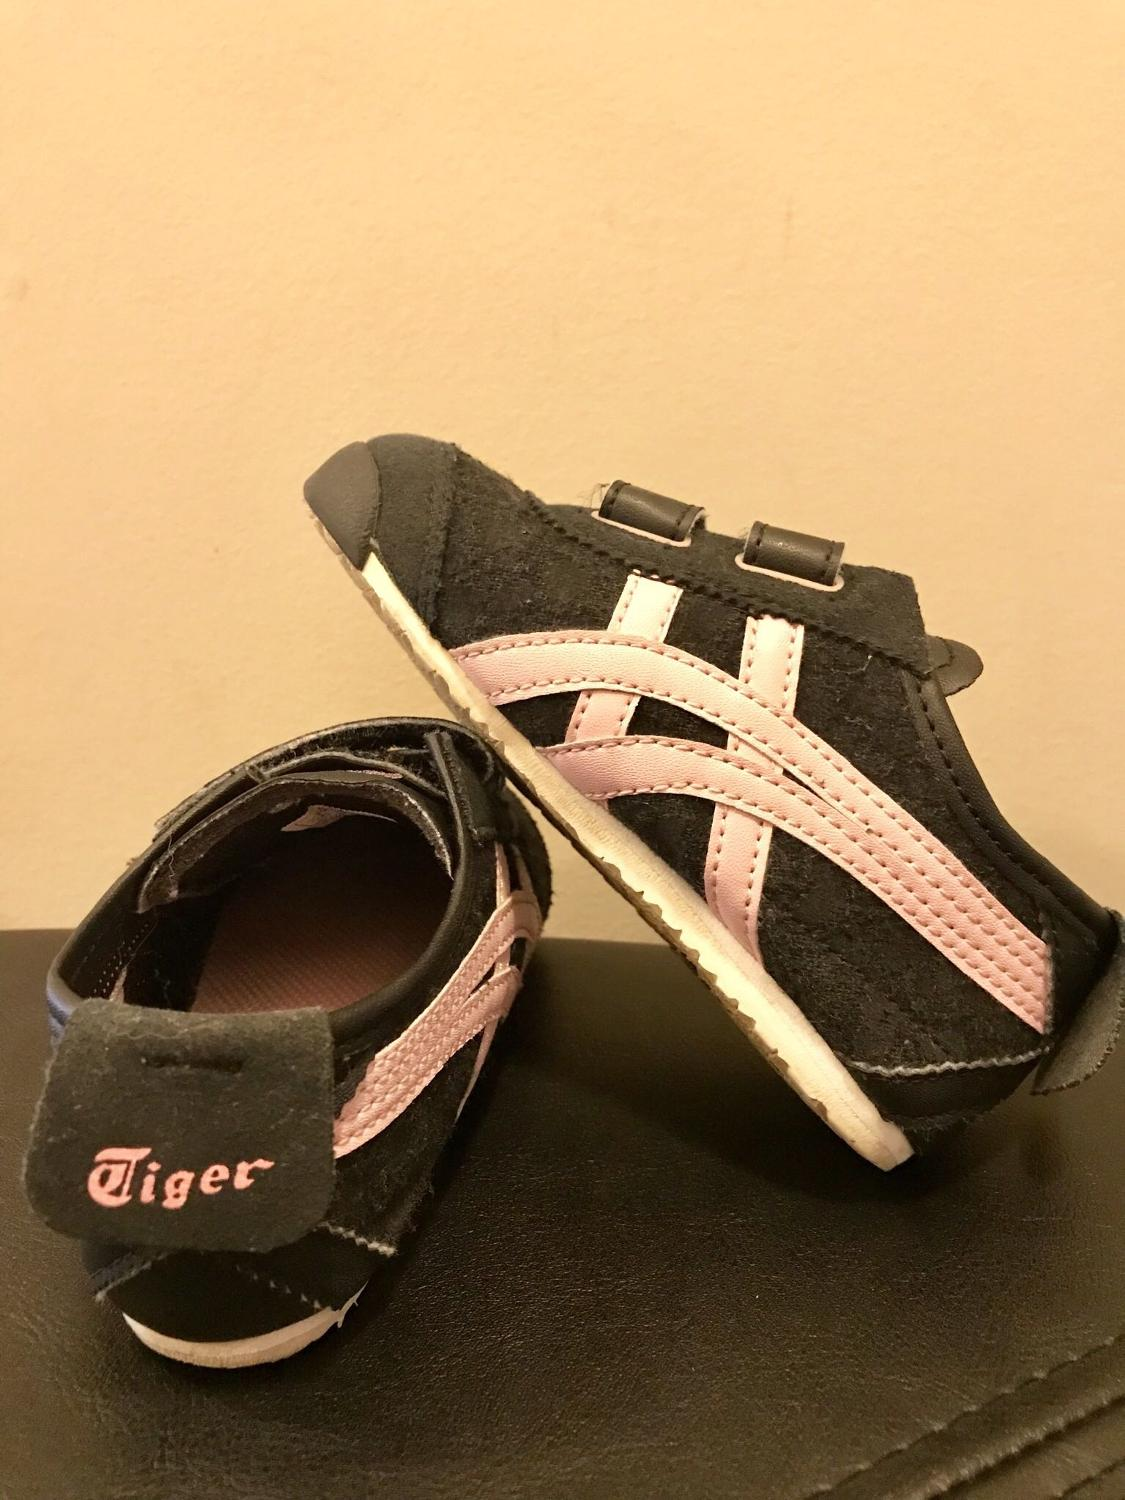 newest collection cd8f2 0256a Onitsuka Tiger Kids C7 velcro runner